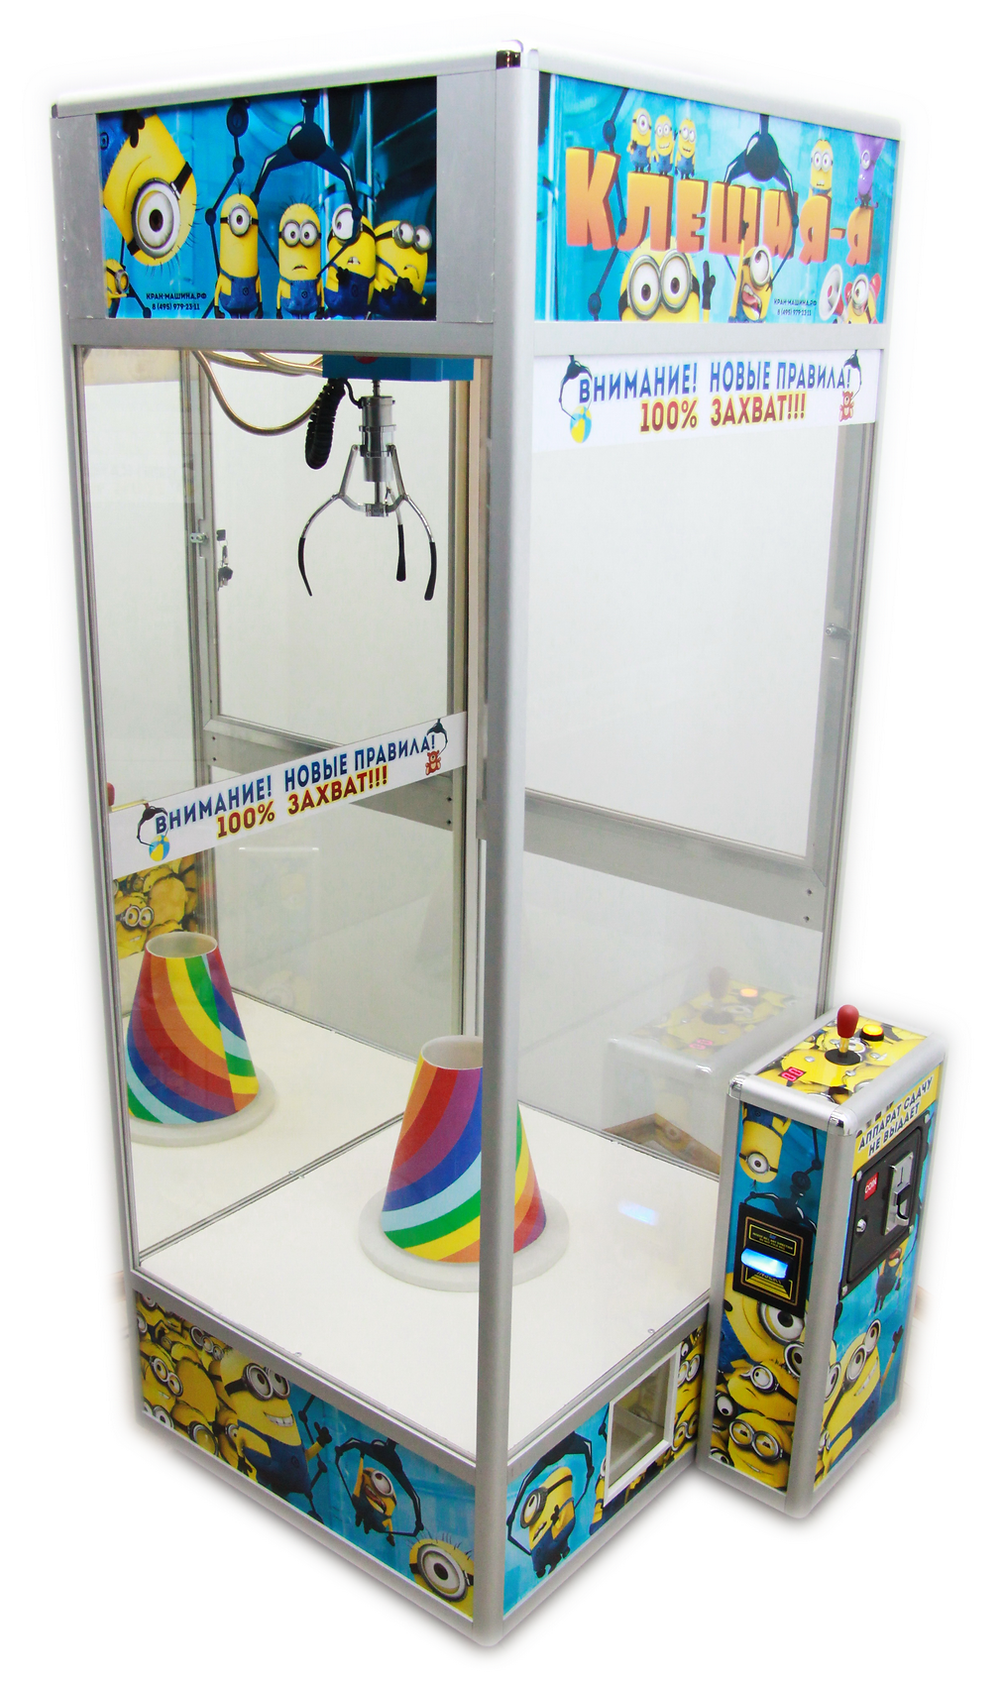 The device has no analogues in the world and has been certified for use .    Shipped worldwide .     The peculiarity of the machine is the lack of hidden algorithms of the game . The device Grabber with a pocket is absolutely honest with the players , with a simple hit in the pocket toy you can win a prize. That is why Claw crane machine with a sighting hit toys is the most popular demand in the market of machines.